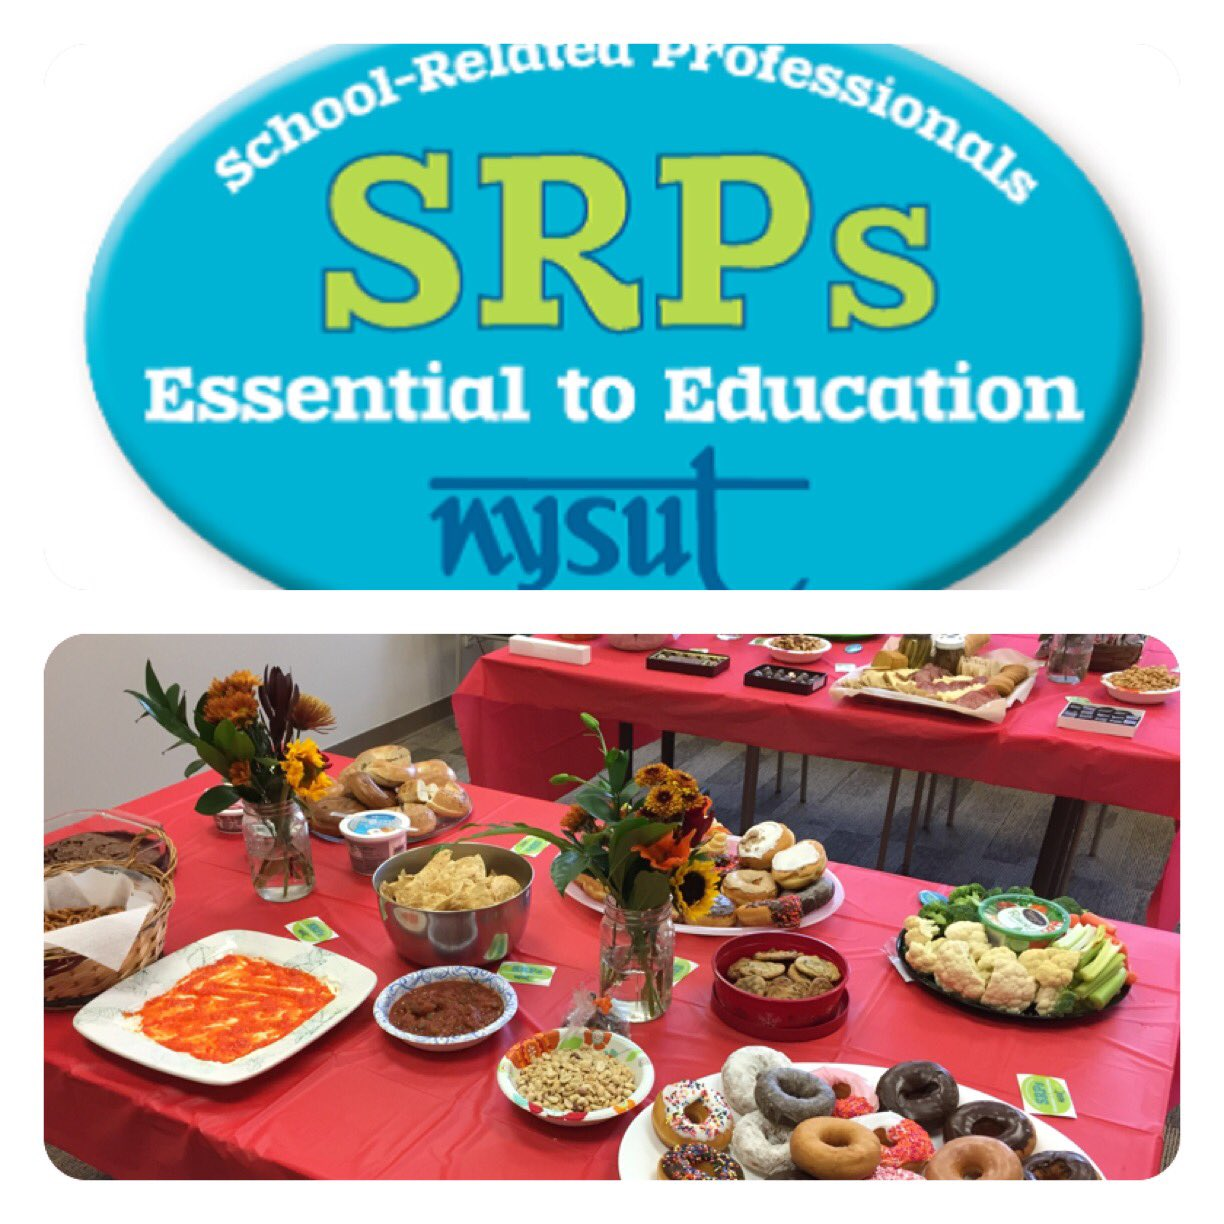 NTA honoring wonderful colleagues on School-Related Professionals Day! #naplescsd @nysut https://t.co/gfRScnEFkm